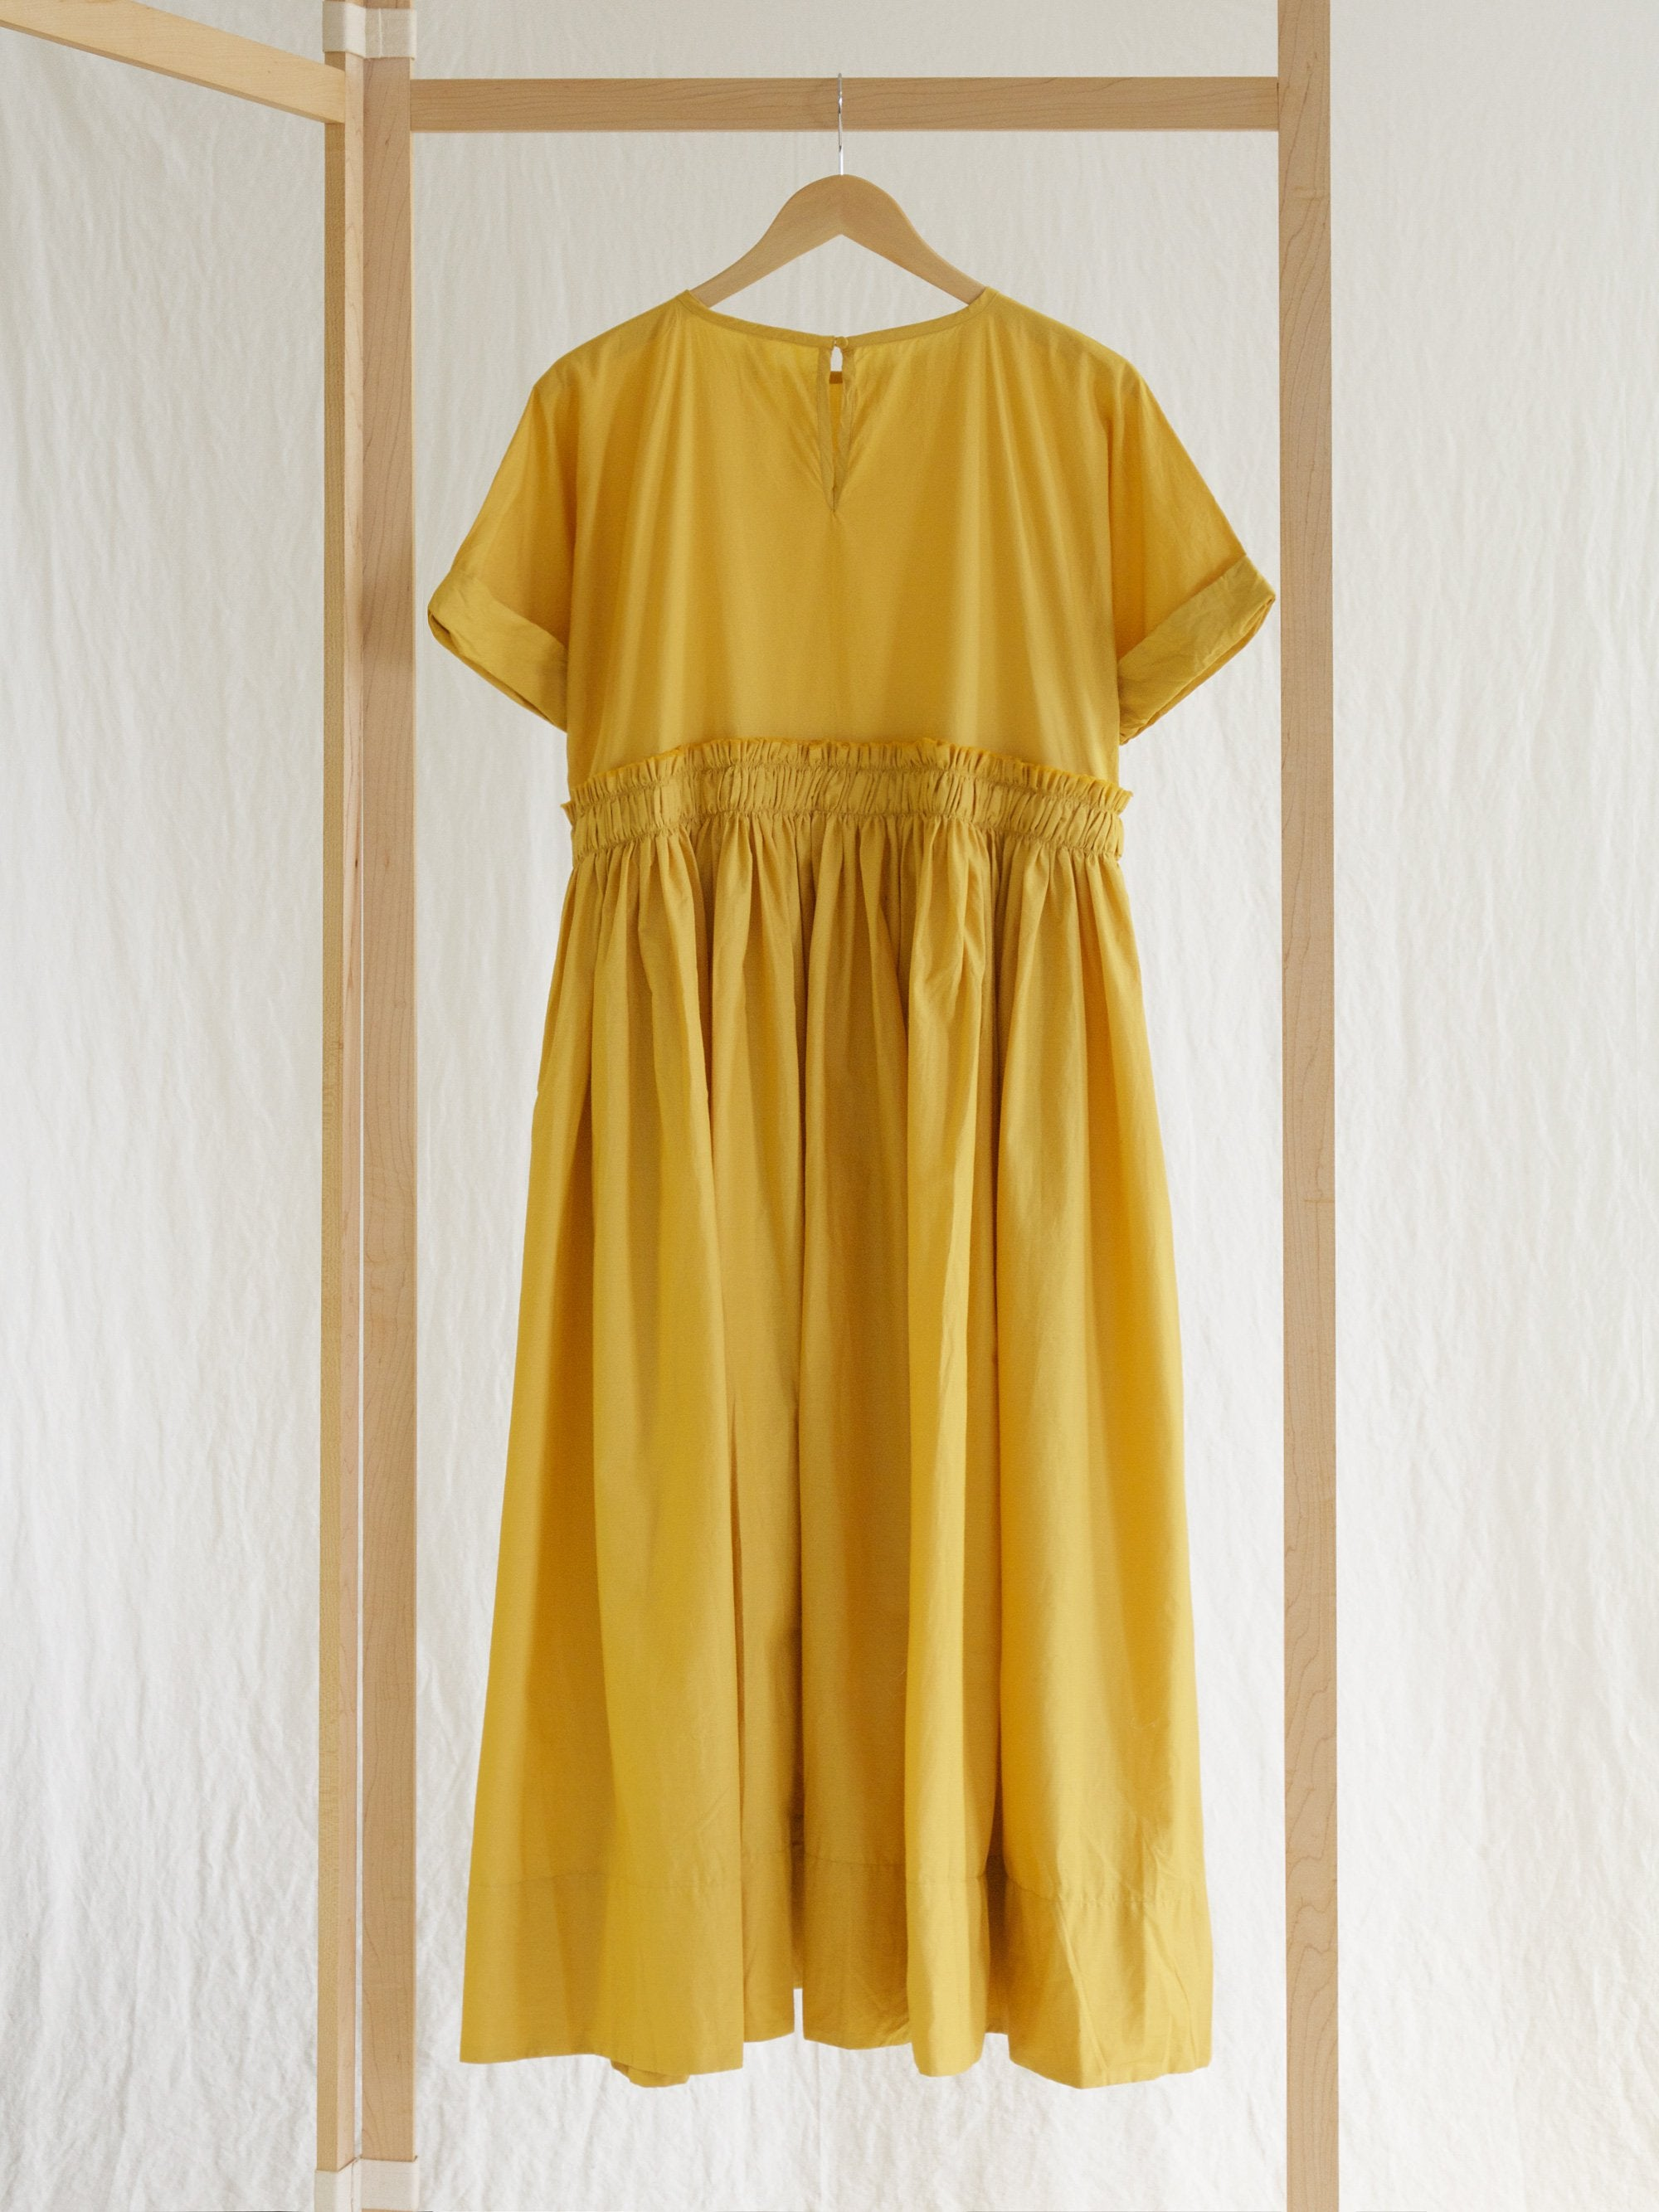 Namu Shop - Veritecoeur Pleated Dress - Karashi